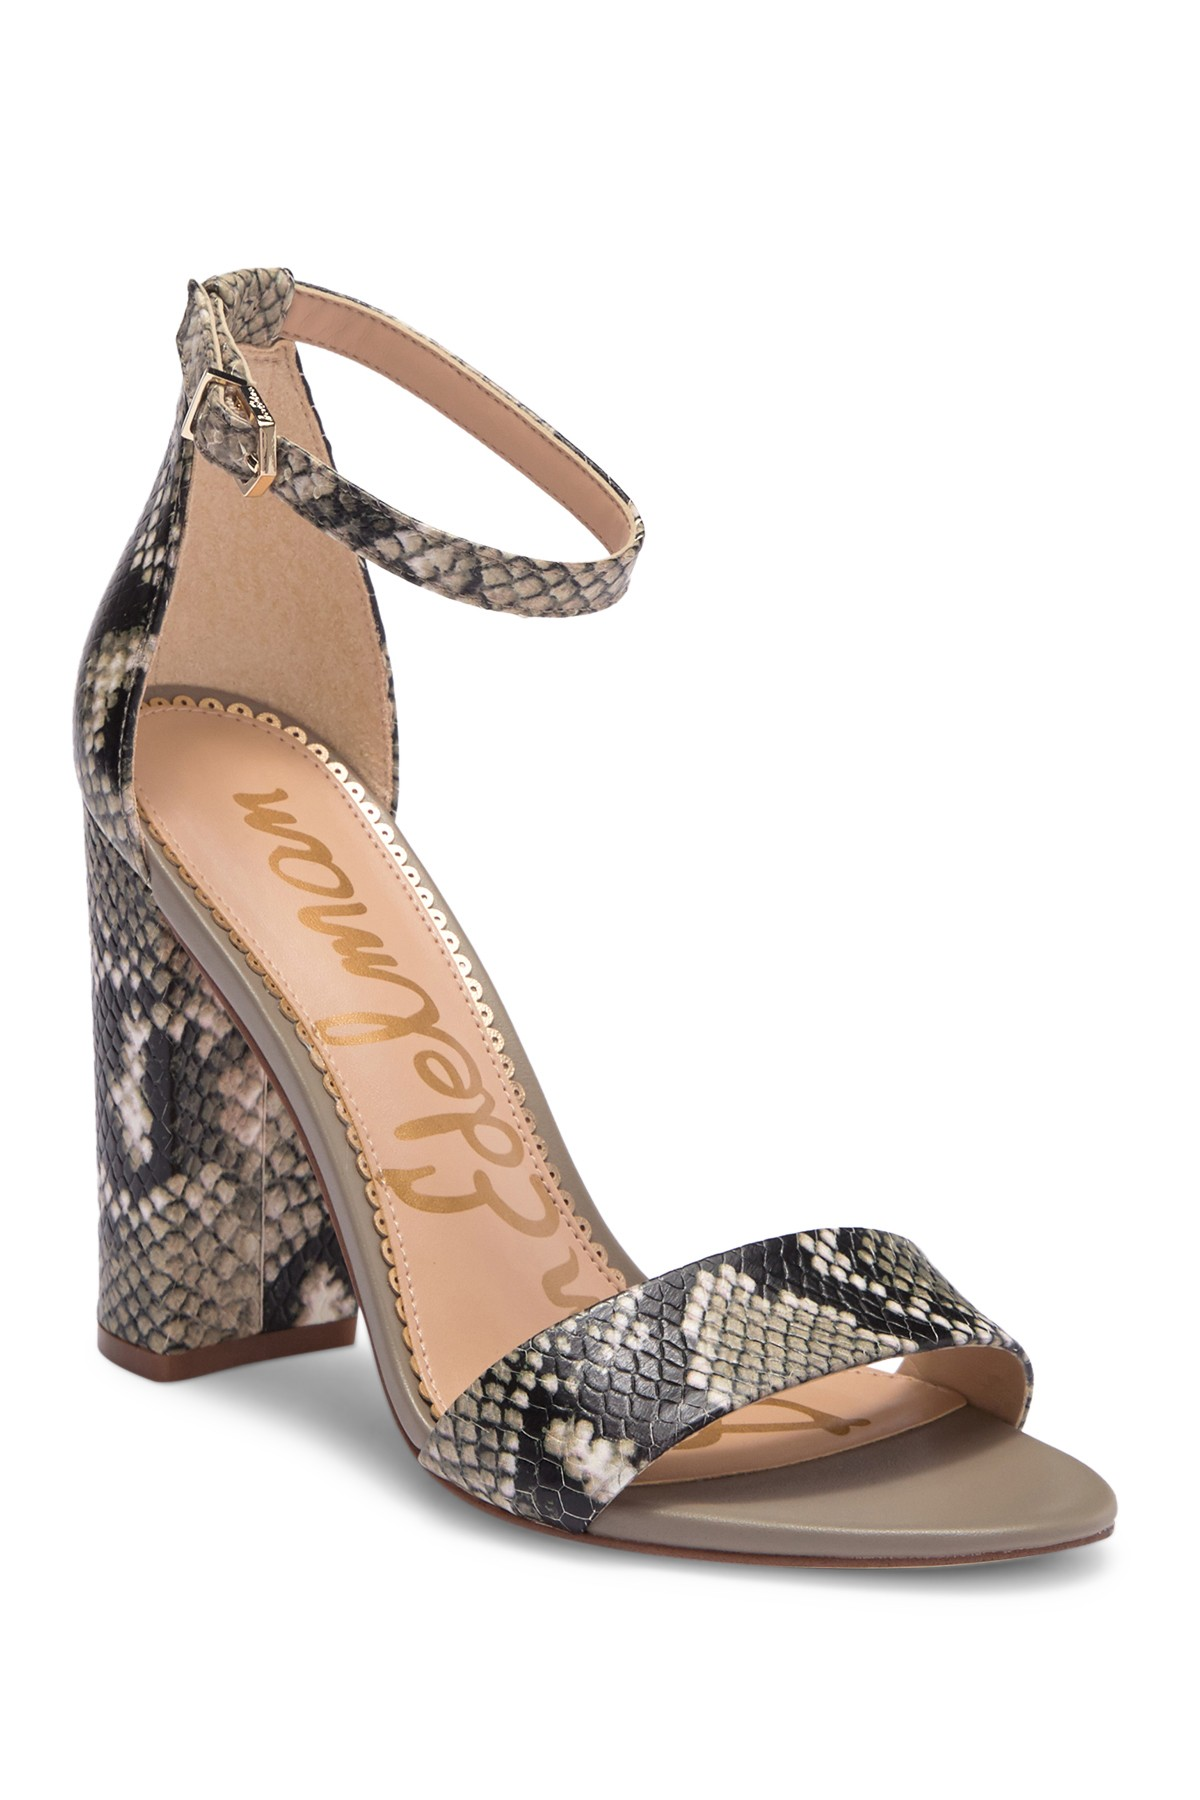 117800d51 Sam Edelman - Yaro Leather Block Heel Sandal is now 43% off. Free Shipping  on orders over  100.